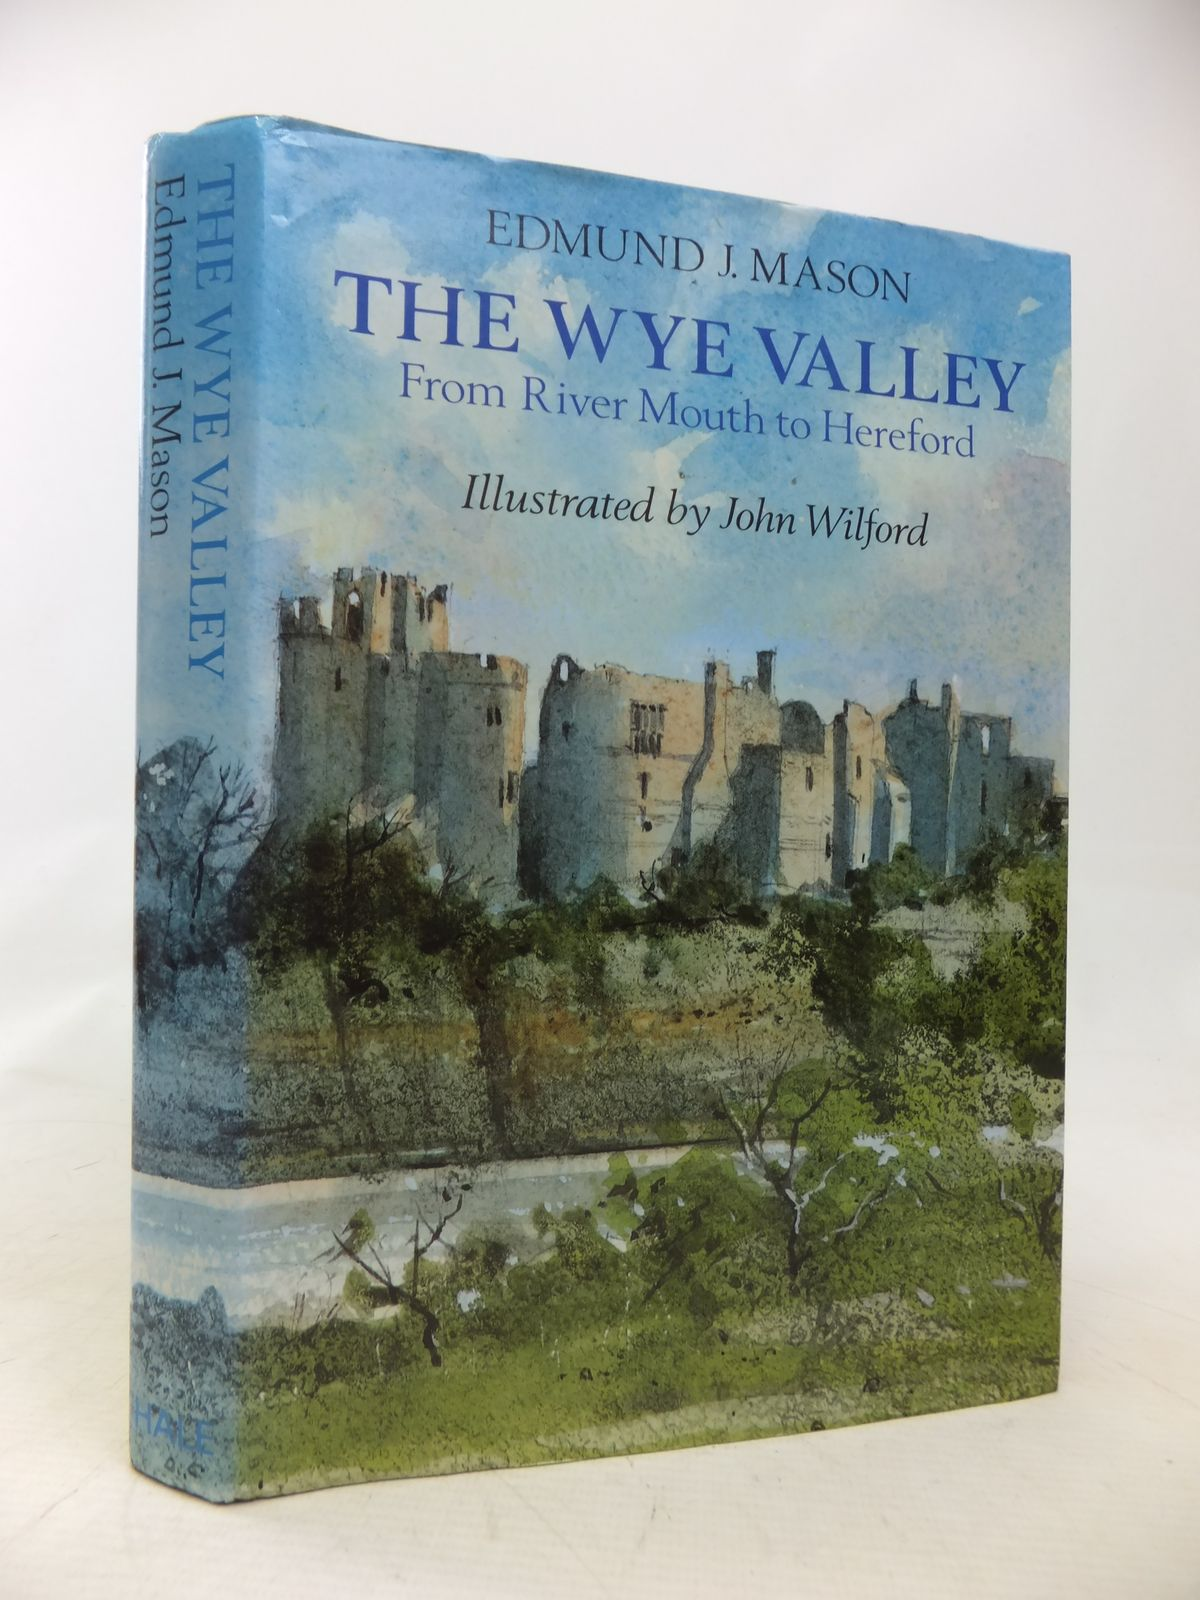 Photo of THE WYE VALLEY: FROM RIVER MOUTH TO HEREFORD written by Mason, Edmund J. illustrated by Wilford, John published by Robert Hale Limited (STOCK CODE: 1810080)  for sale by Stella & Rose's Books